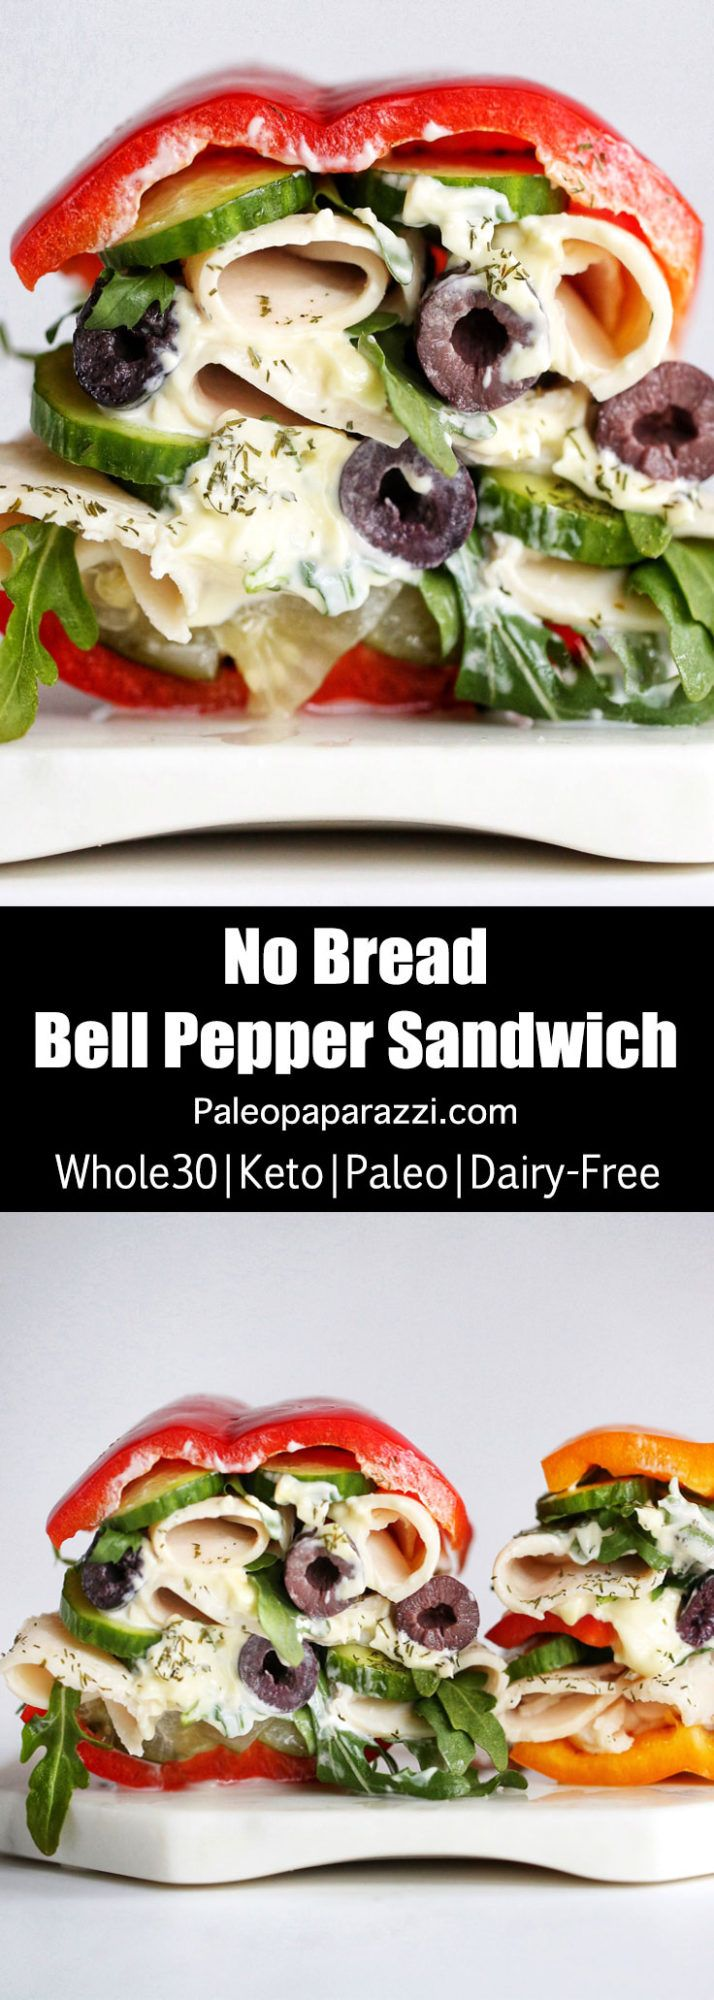 Breadless Bell Pepper Sandwich (Whole30-Keto-Paleo) - The Paleo Paparazzi